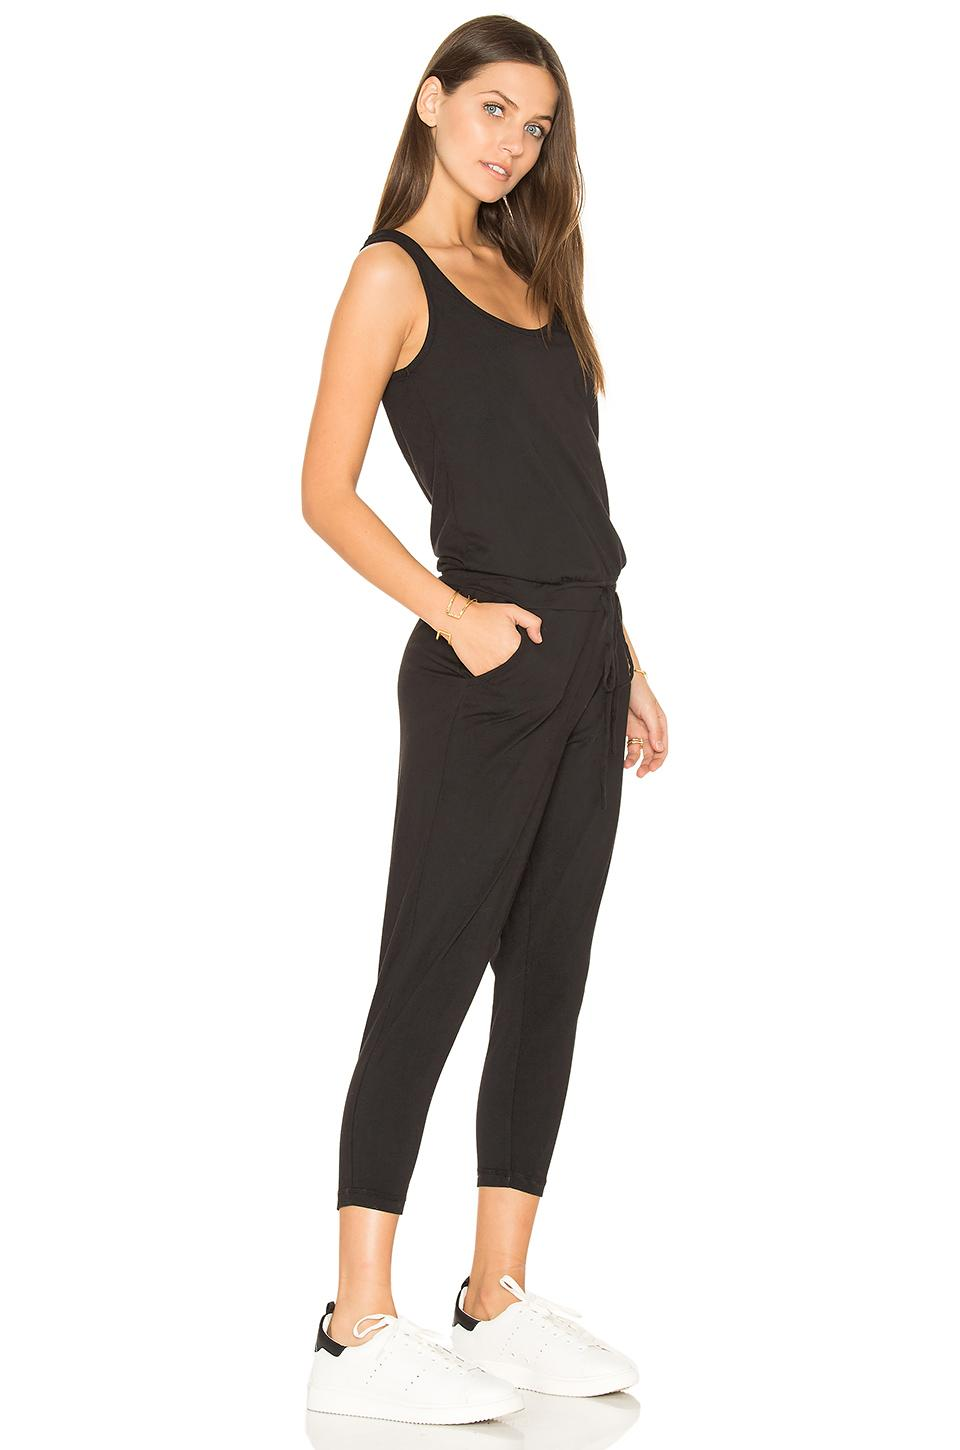 9f2102e666b Bobi - Black Supreme Jersey Sleeveless Jumpsuit - Lyst. View fullscreen